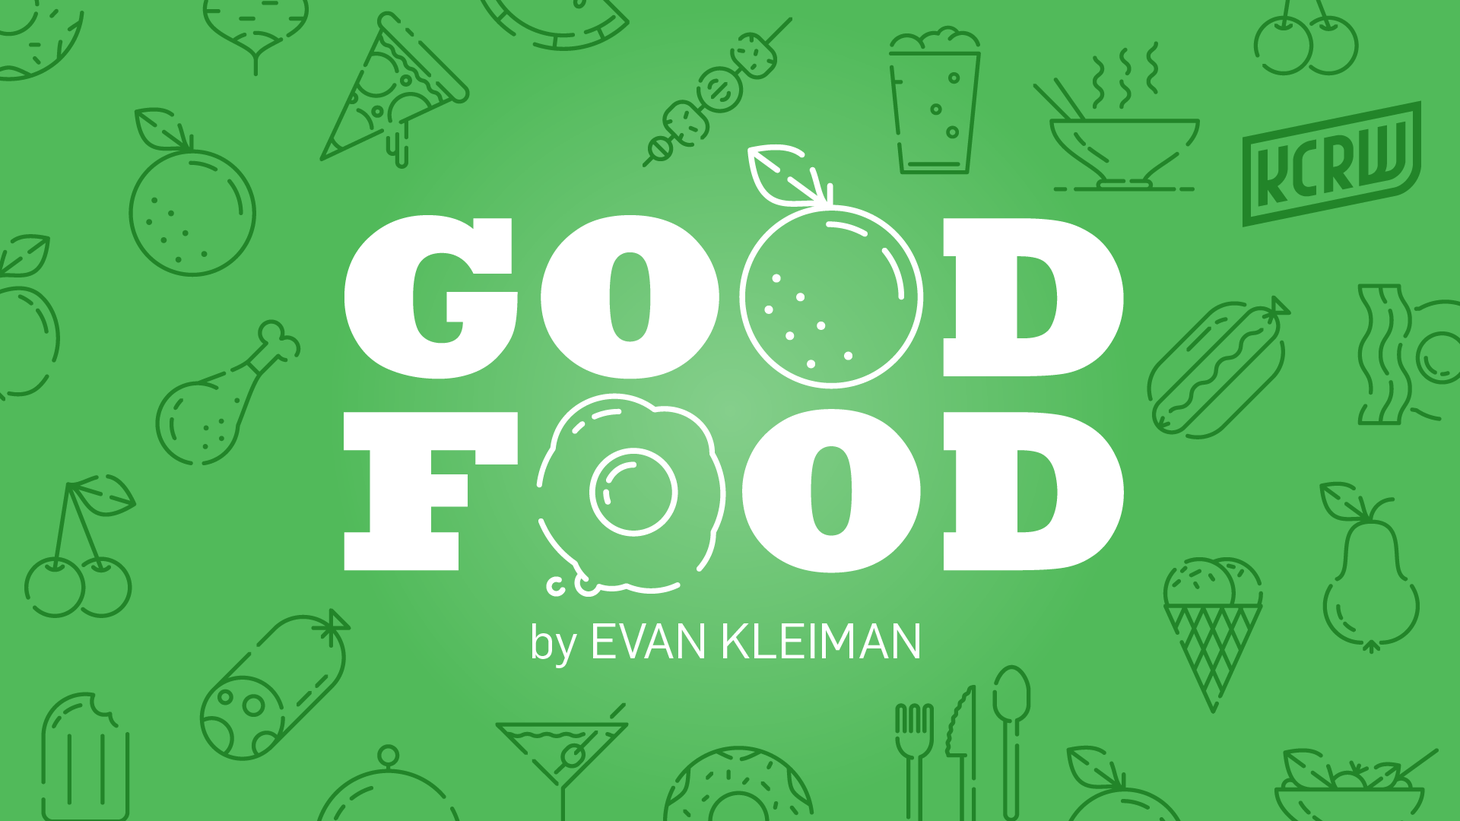 This week we'll find out the best way to stomp grapes in your kitchen -- to get you started on home wine-making. William Rice comes in to talk about steaks. We'll also try to stump you with the latest edition of the Good Food quiz, and the Market Report tells you what's best to buy this week.